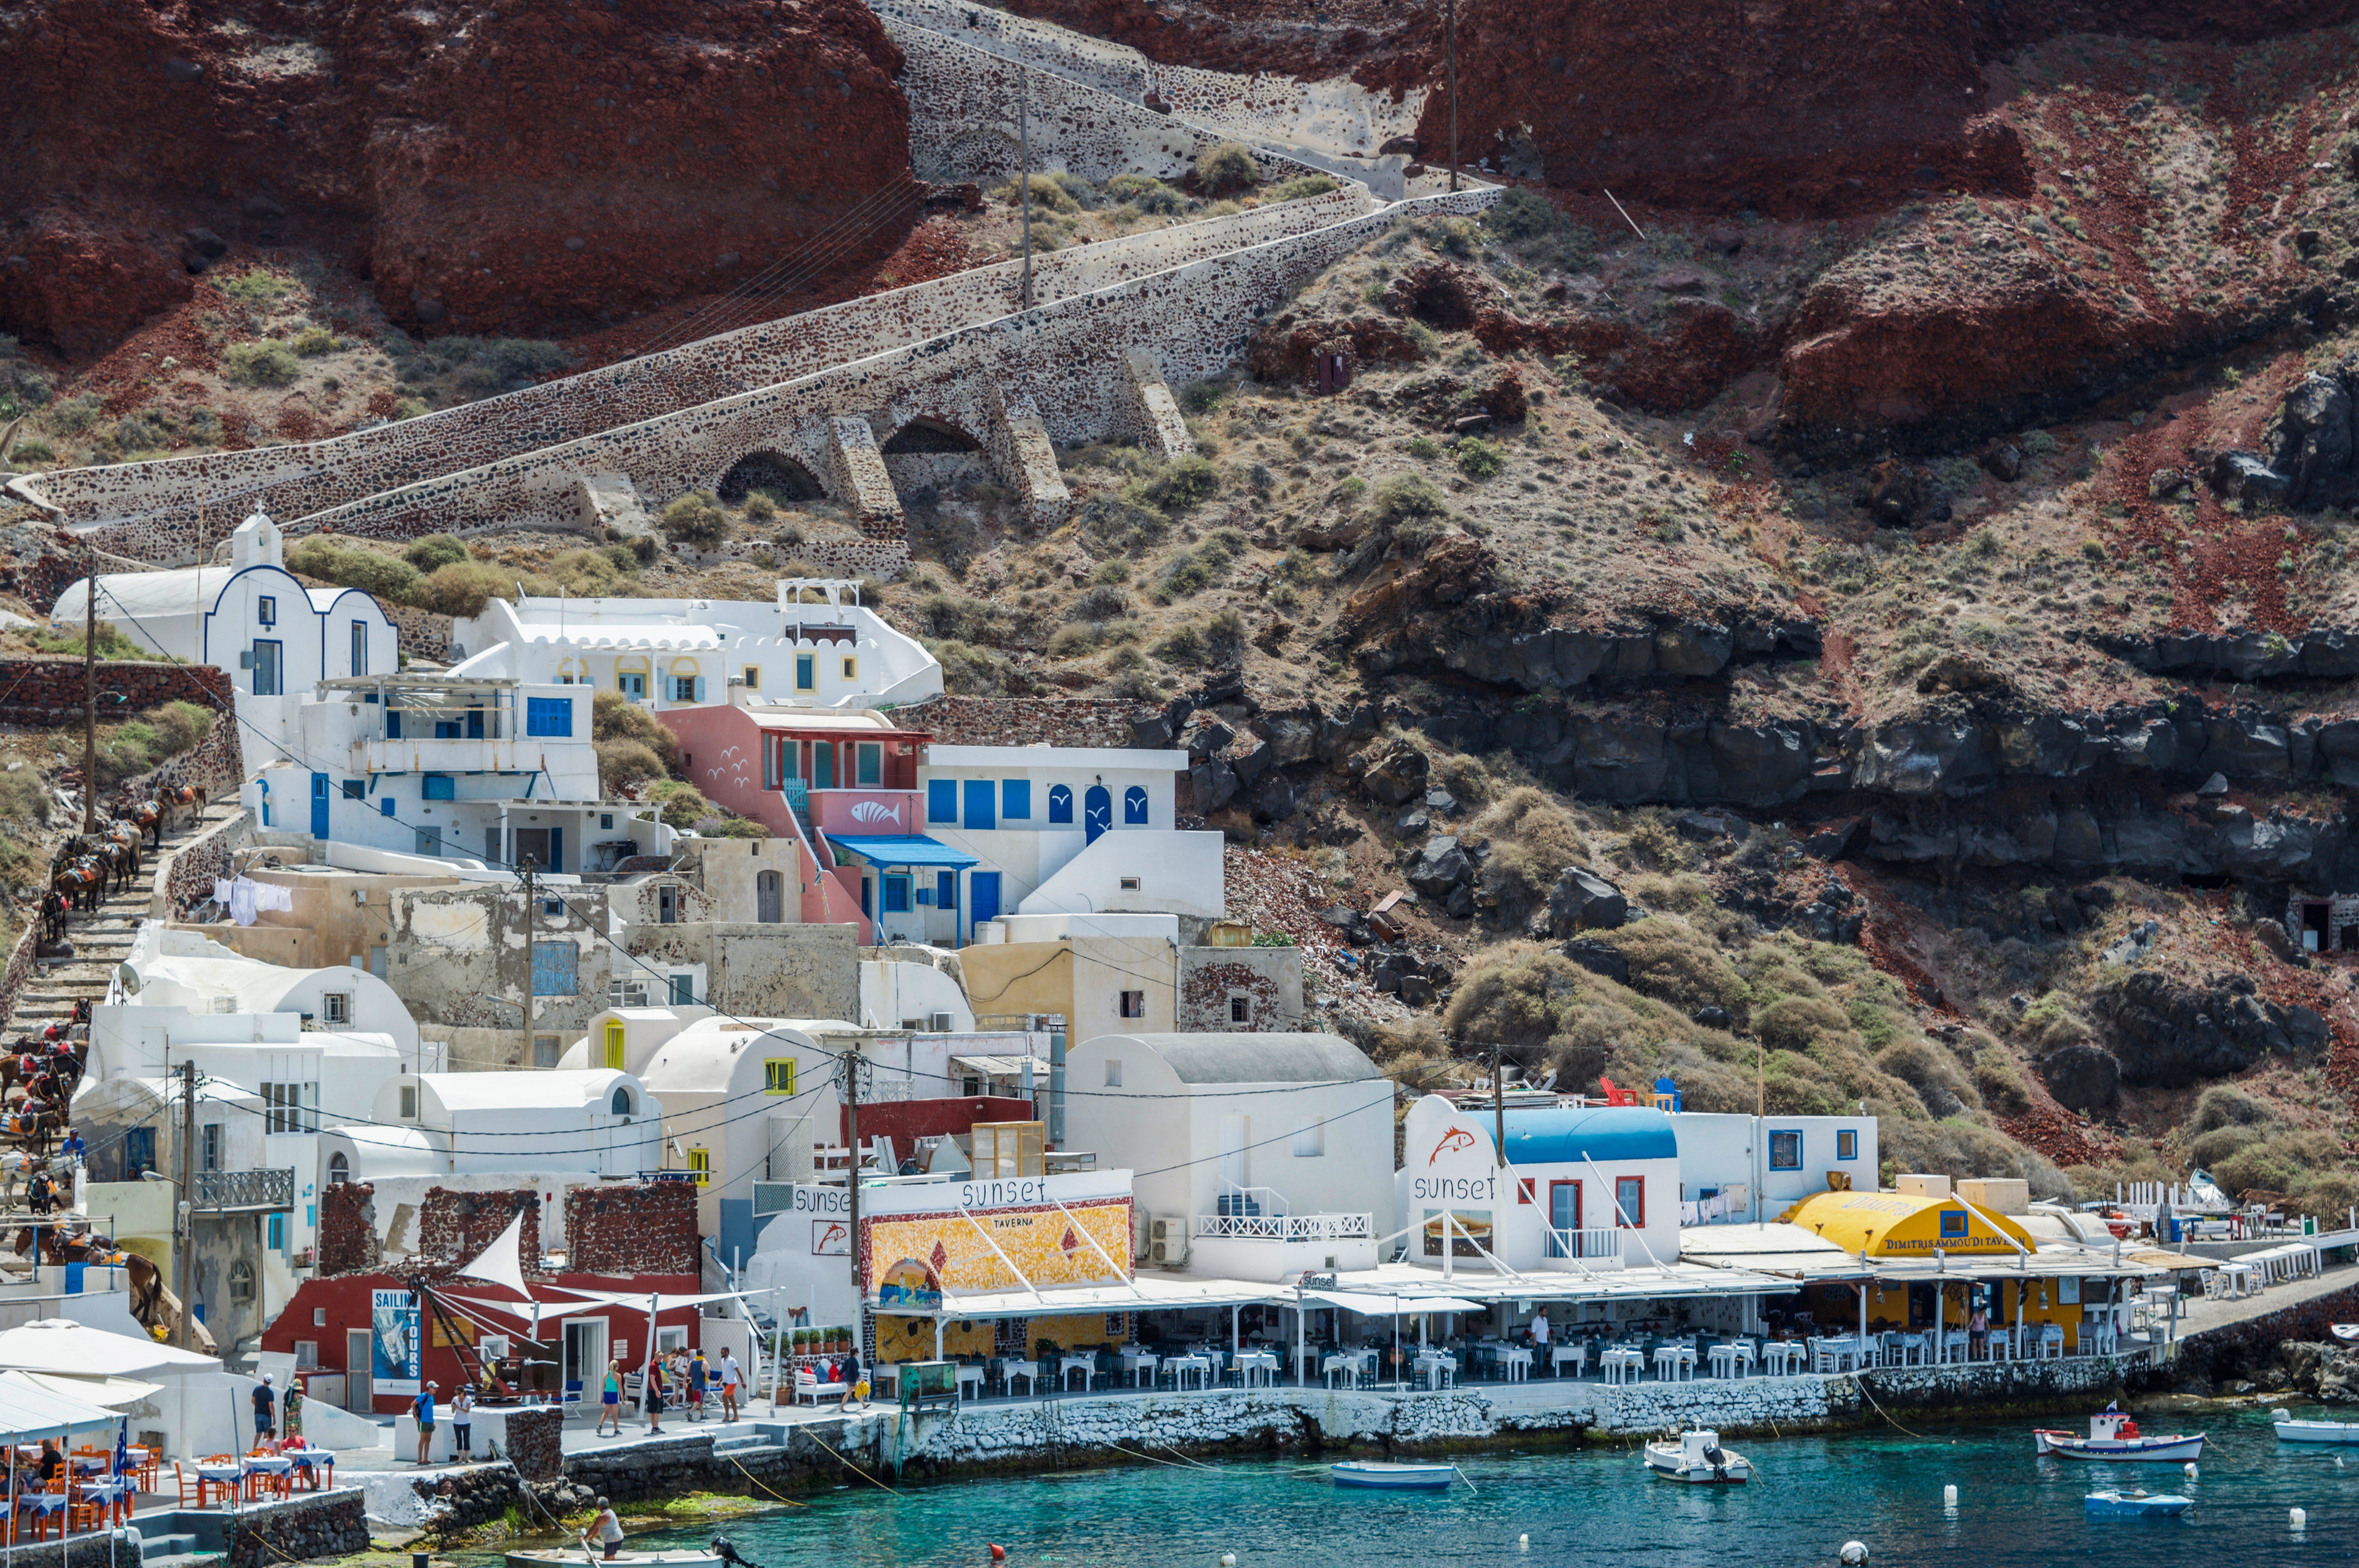 White and Blue Houses Beside Body of Water